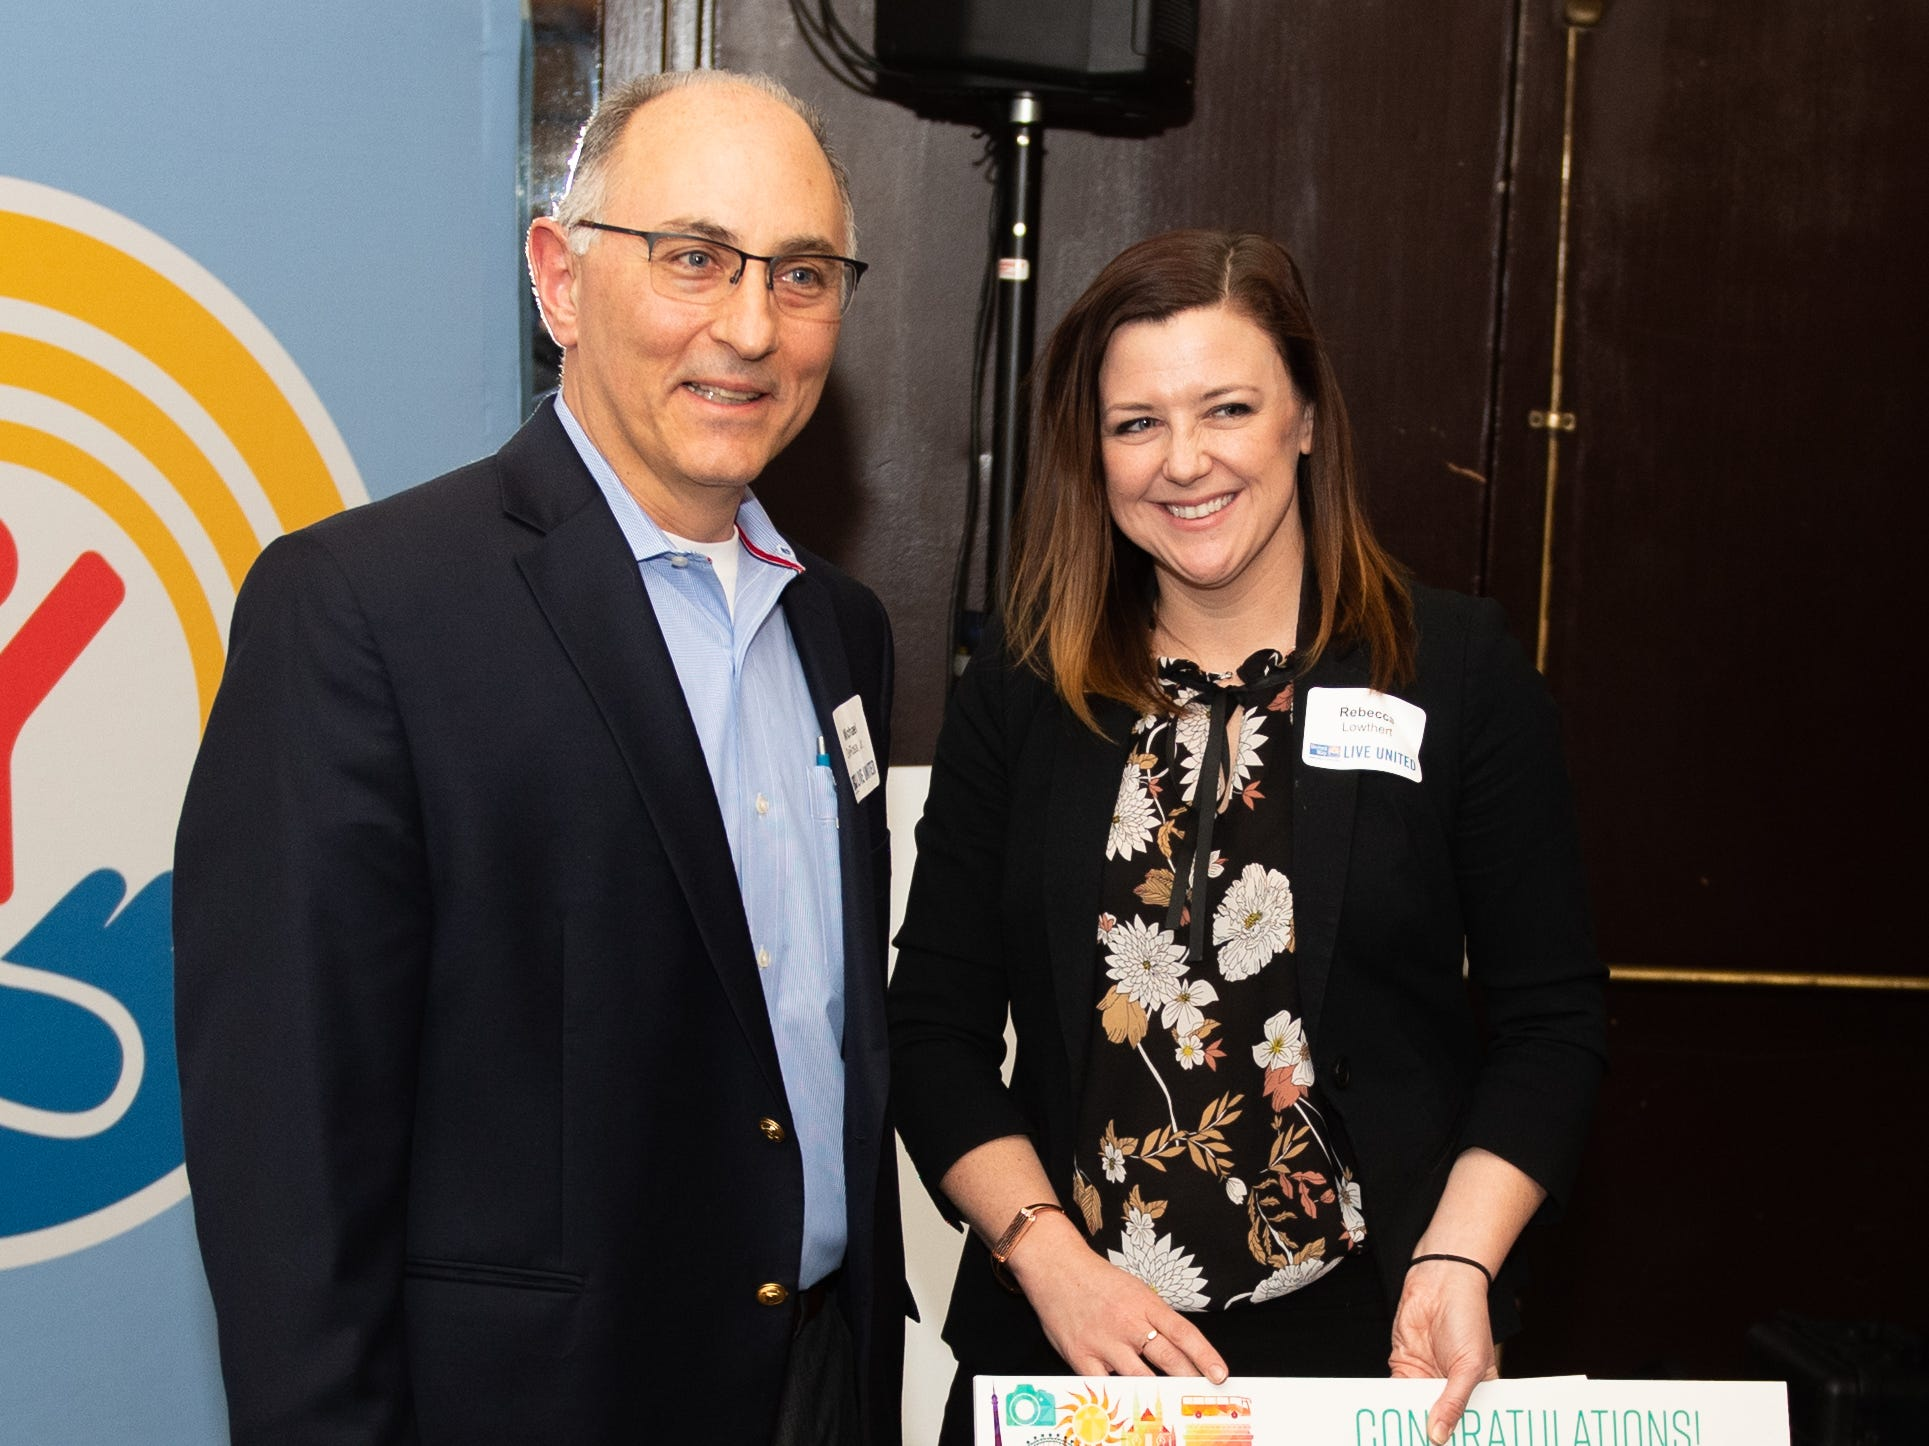 Michael DeRosa of Graham Architectural (left) won a $5,000 Travel Voucher during the 2018 United Way Campaign Celebration, February 7, 2019.